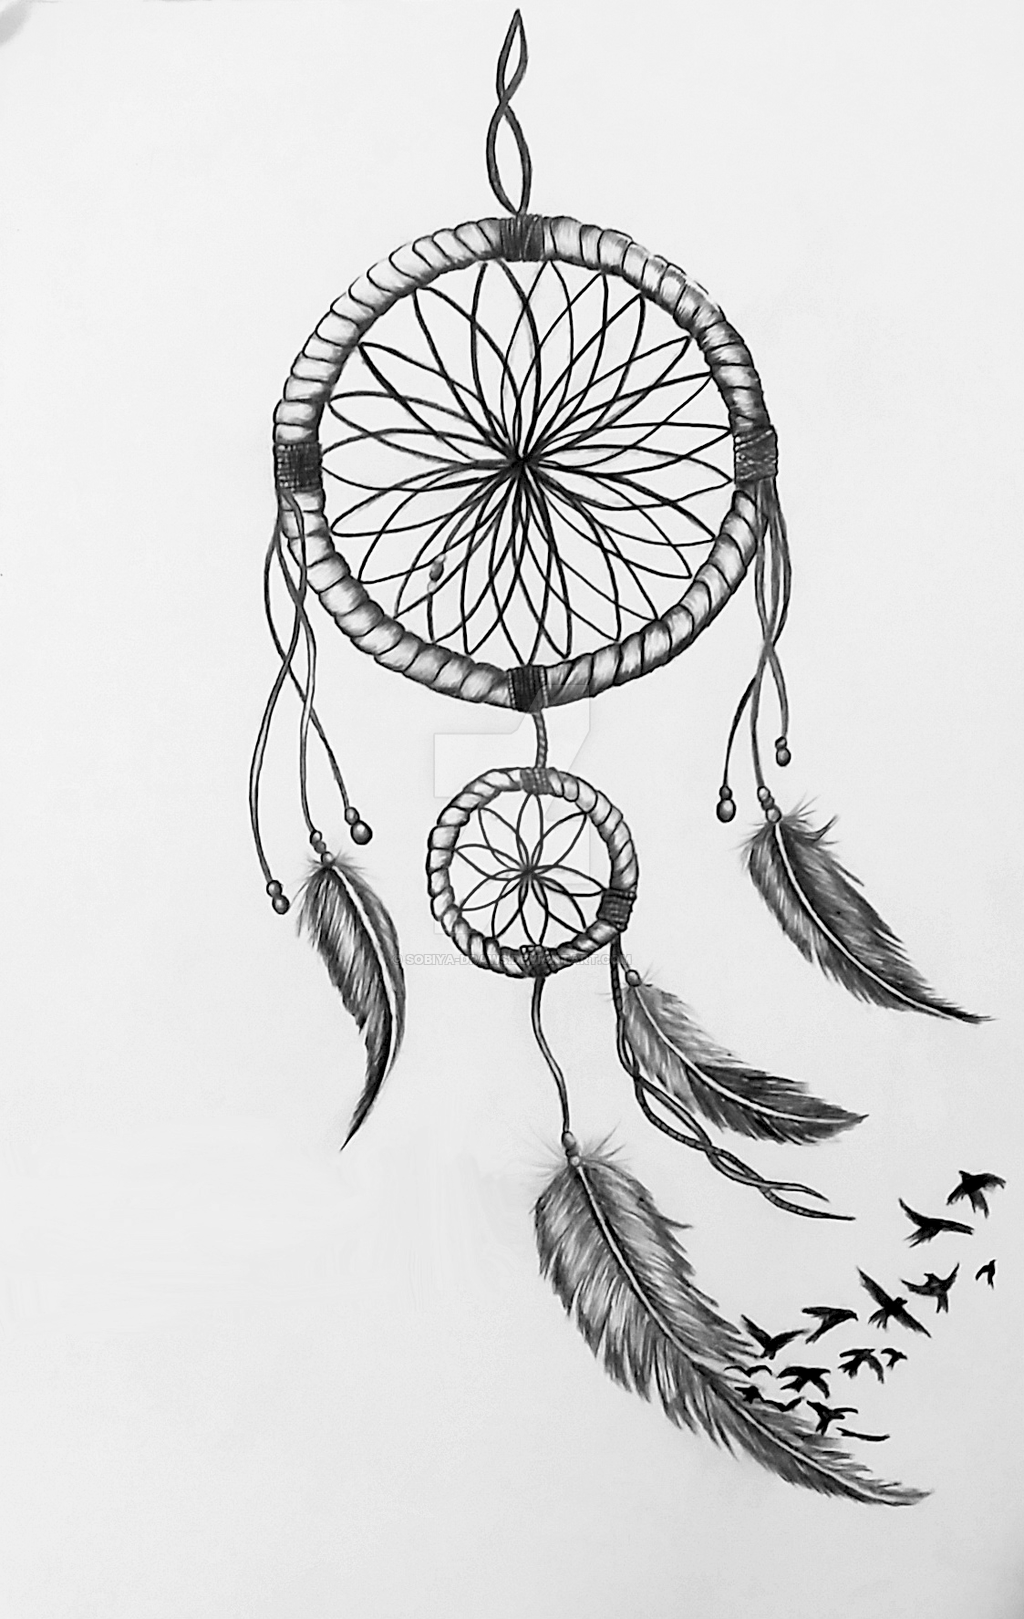 dreamcatcher drawing by sobiya draws miscelaneous iv pinterest drawings tattoo and dream. Black Bedroom Furniture Sets. Home Design Ideas